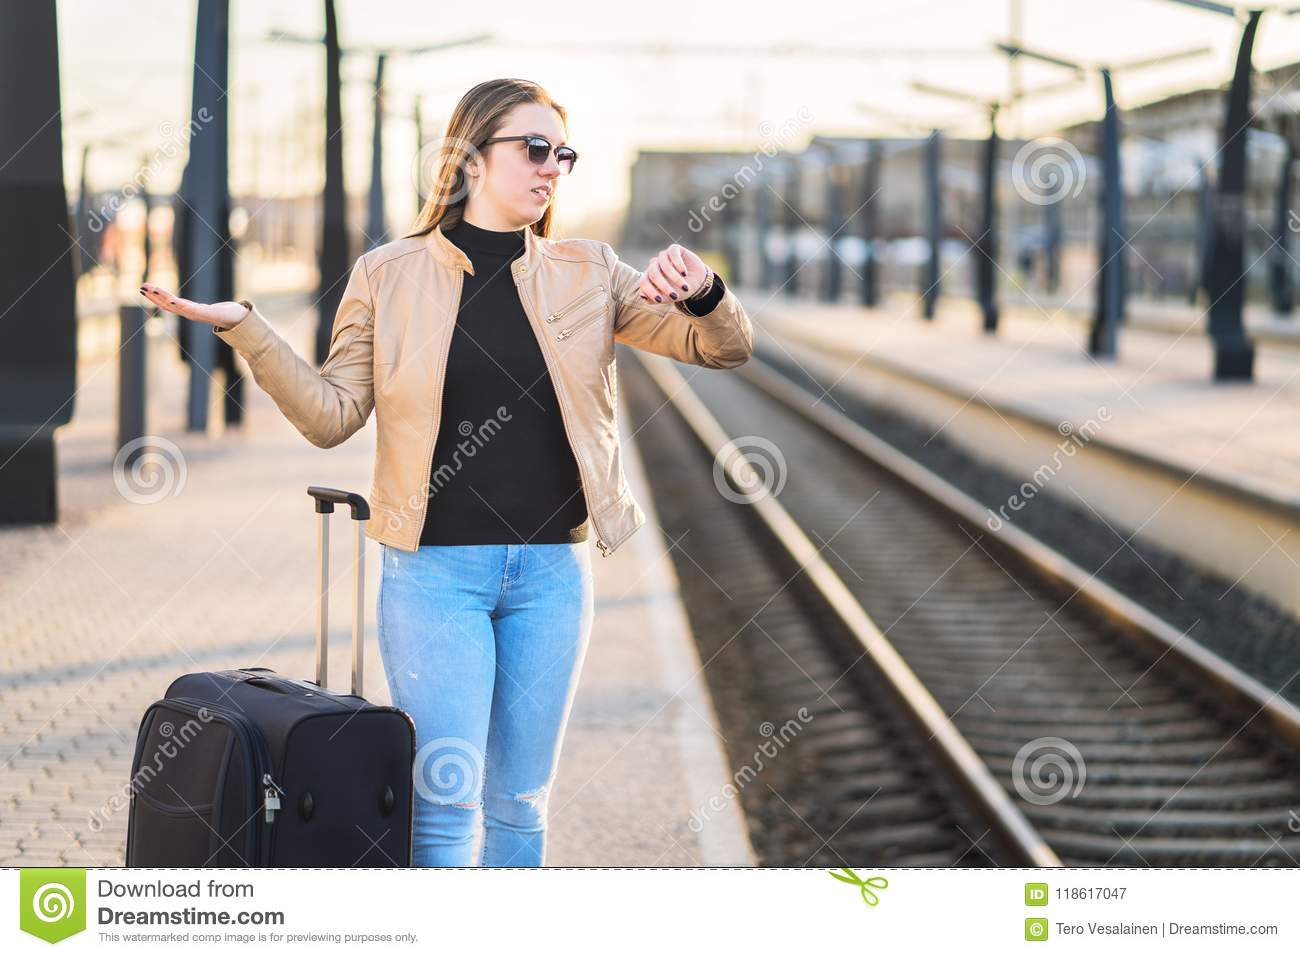 Train late, delayed, canceled or behind schedule.